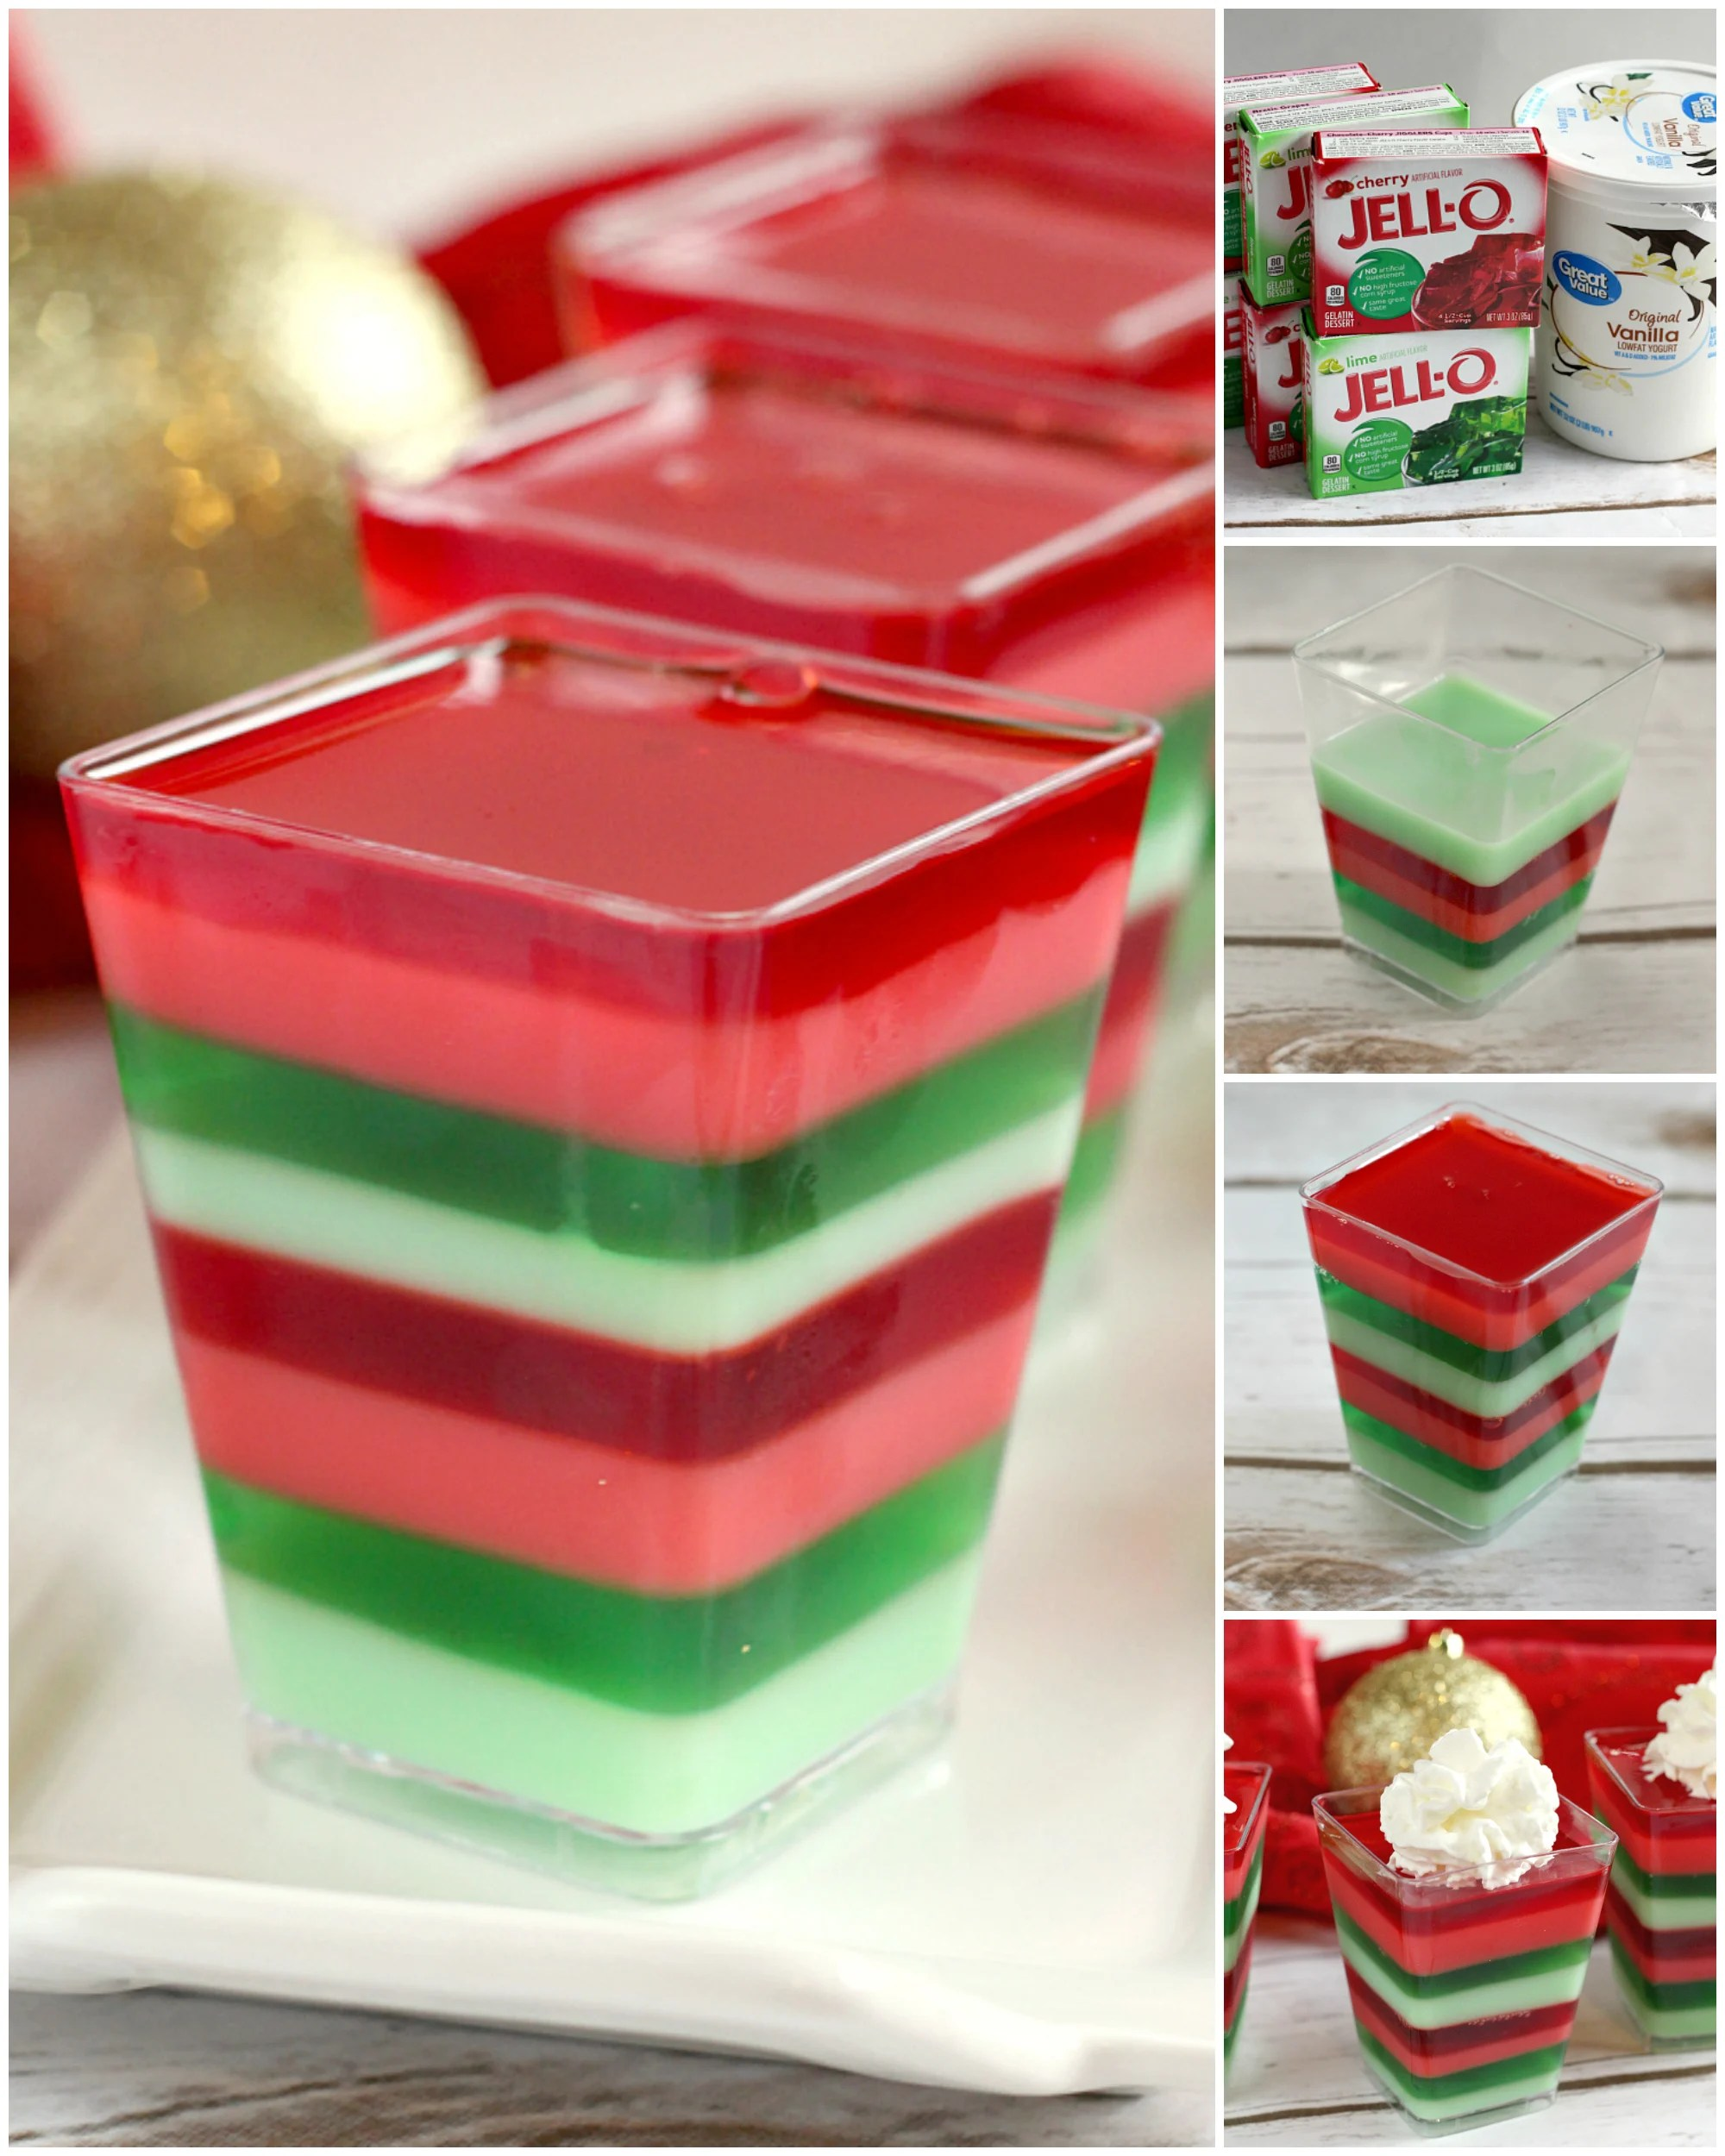 Layered Christmas Jello cups are fun, festive and easy to make for holiday parties! This layered Jello recipe is made with cherry and lime gelatin for a delicious flavor combination in the perfect colors for Christmas!